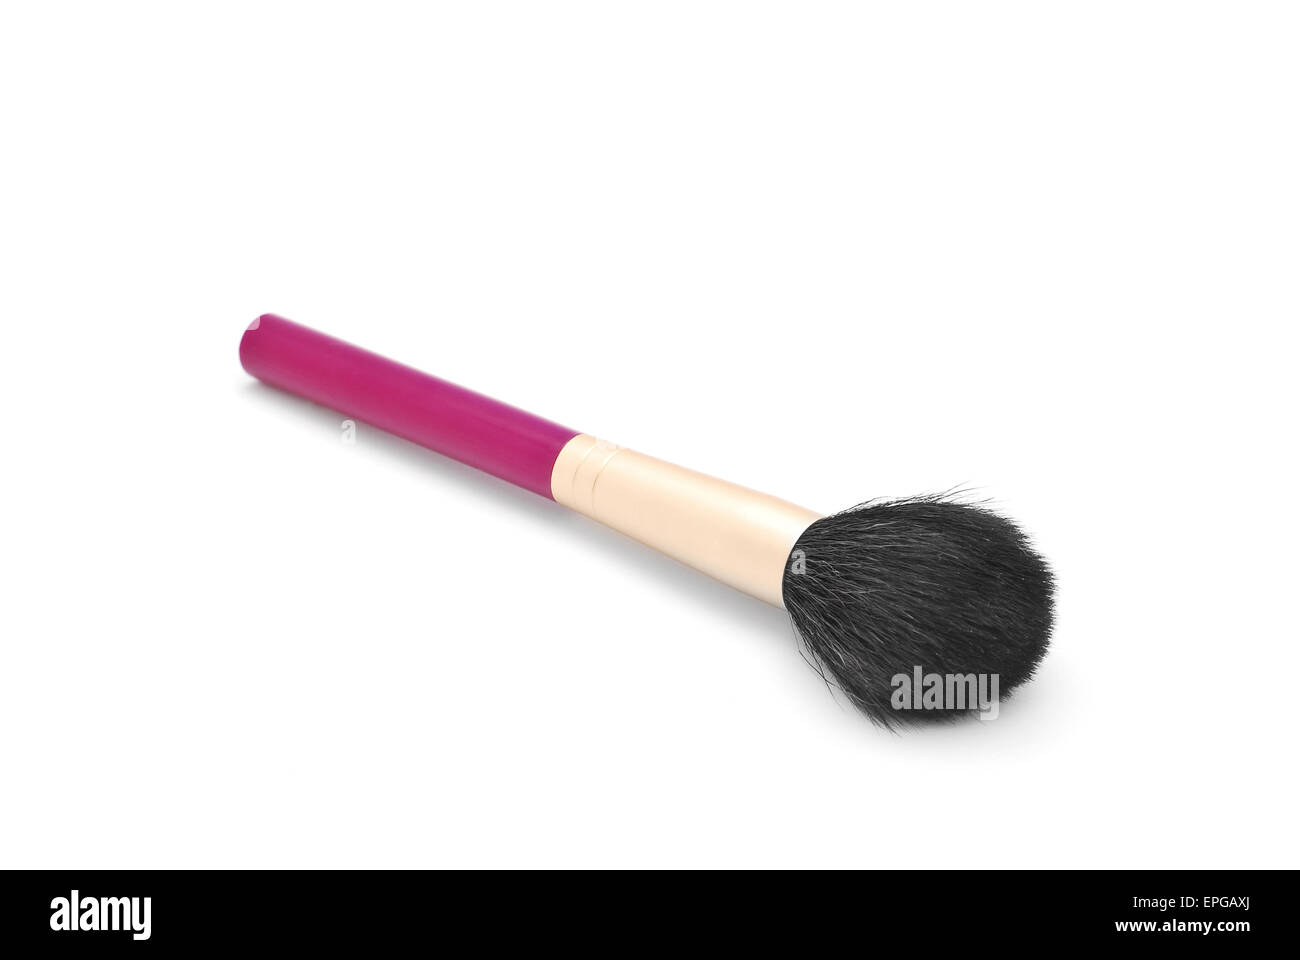 cosmetic brush on white background - Stock Image